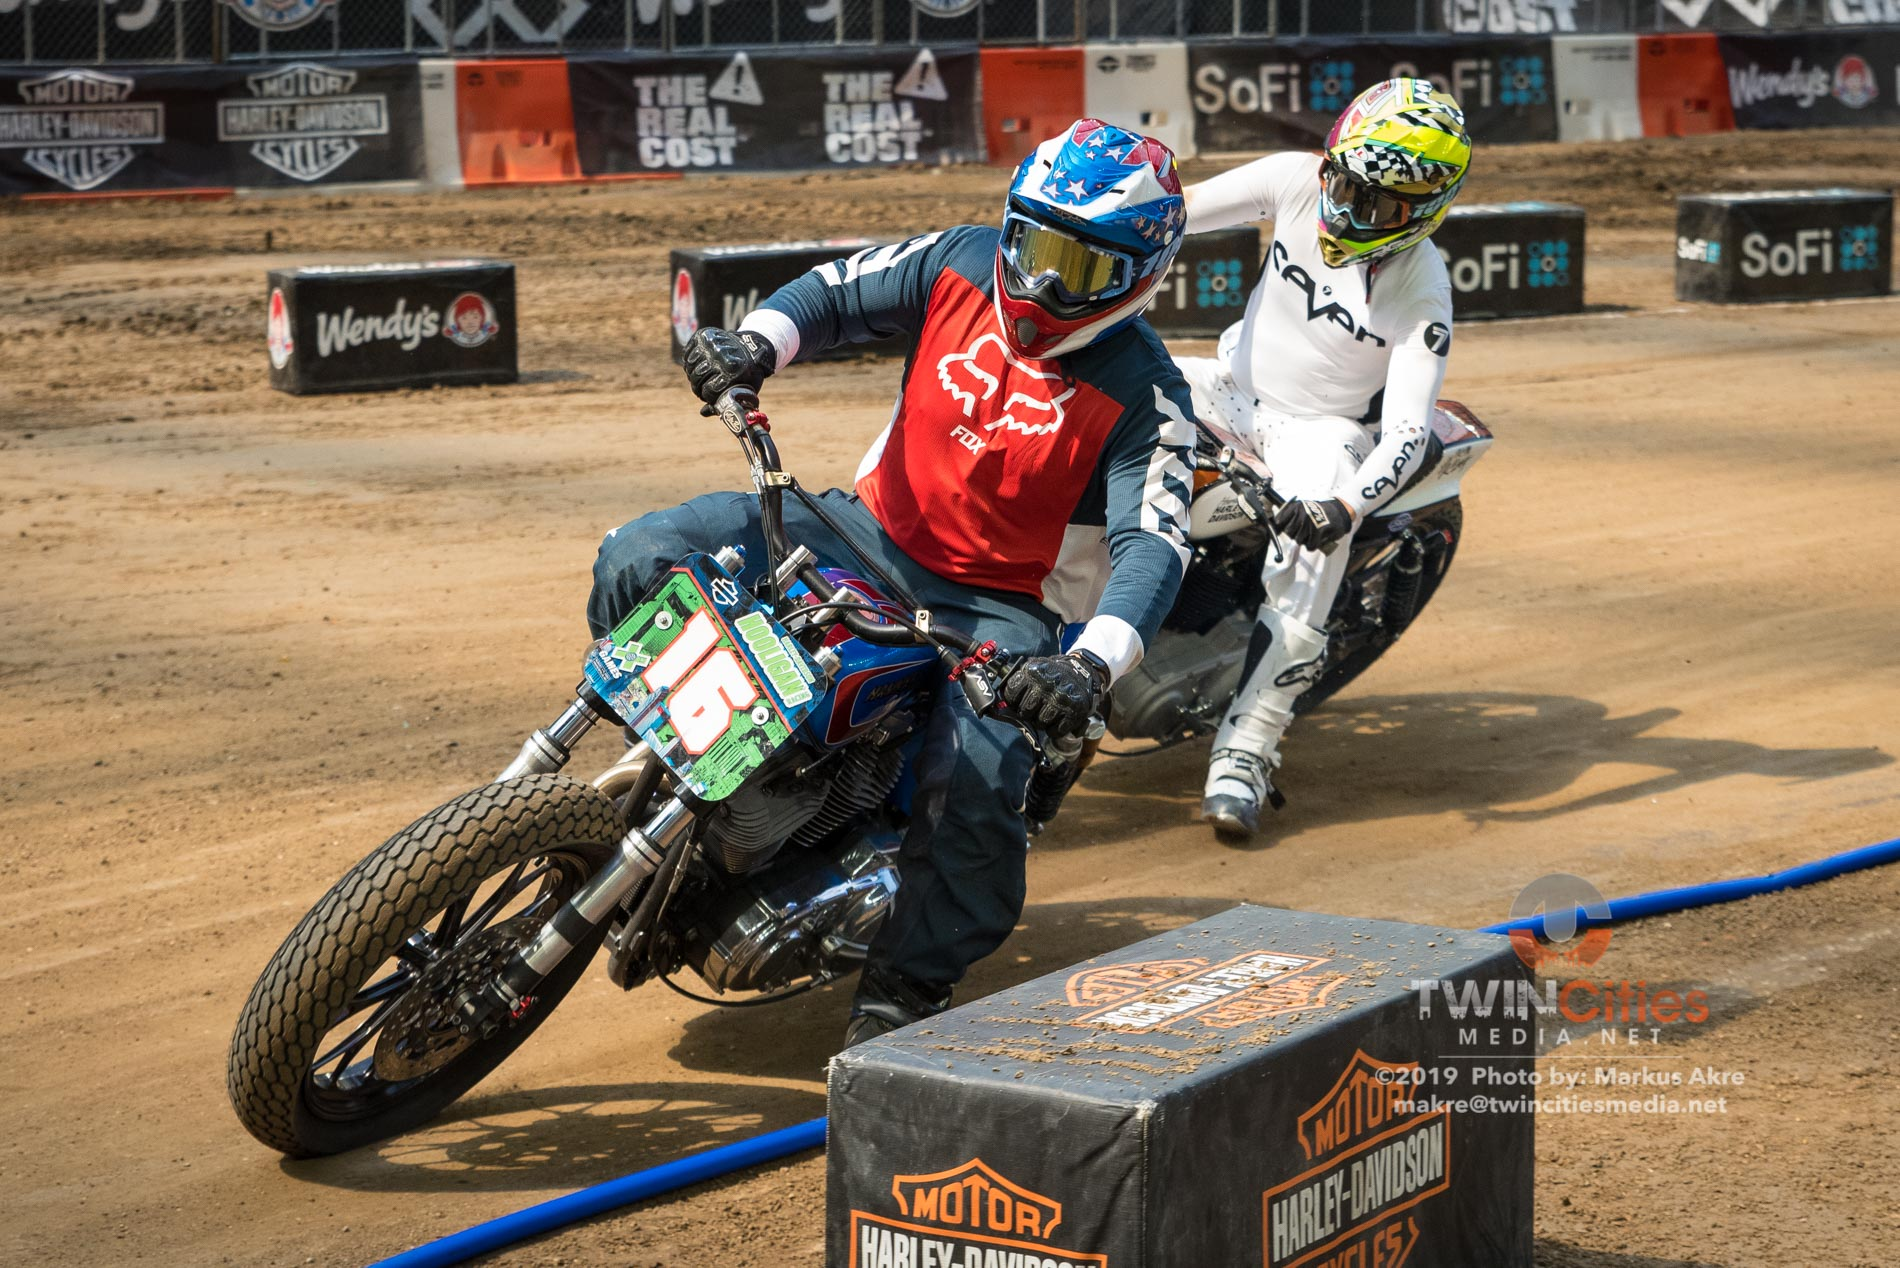 2019-X-Games-Day-4-Harley-Davidson-Hooligan-Racing-14